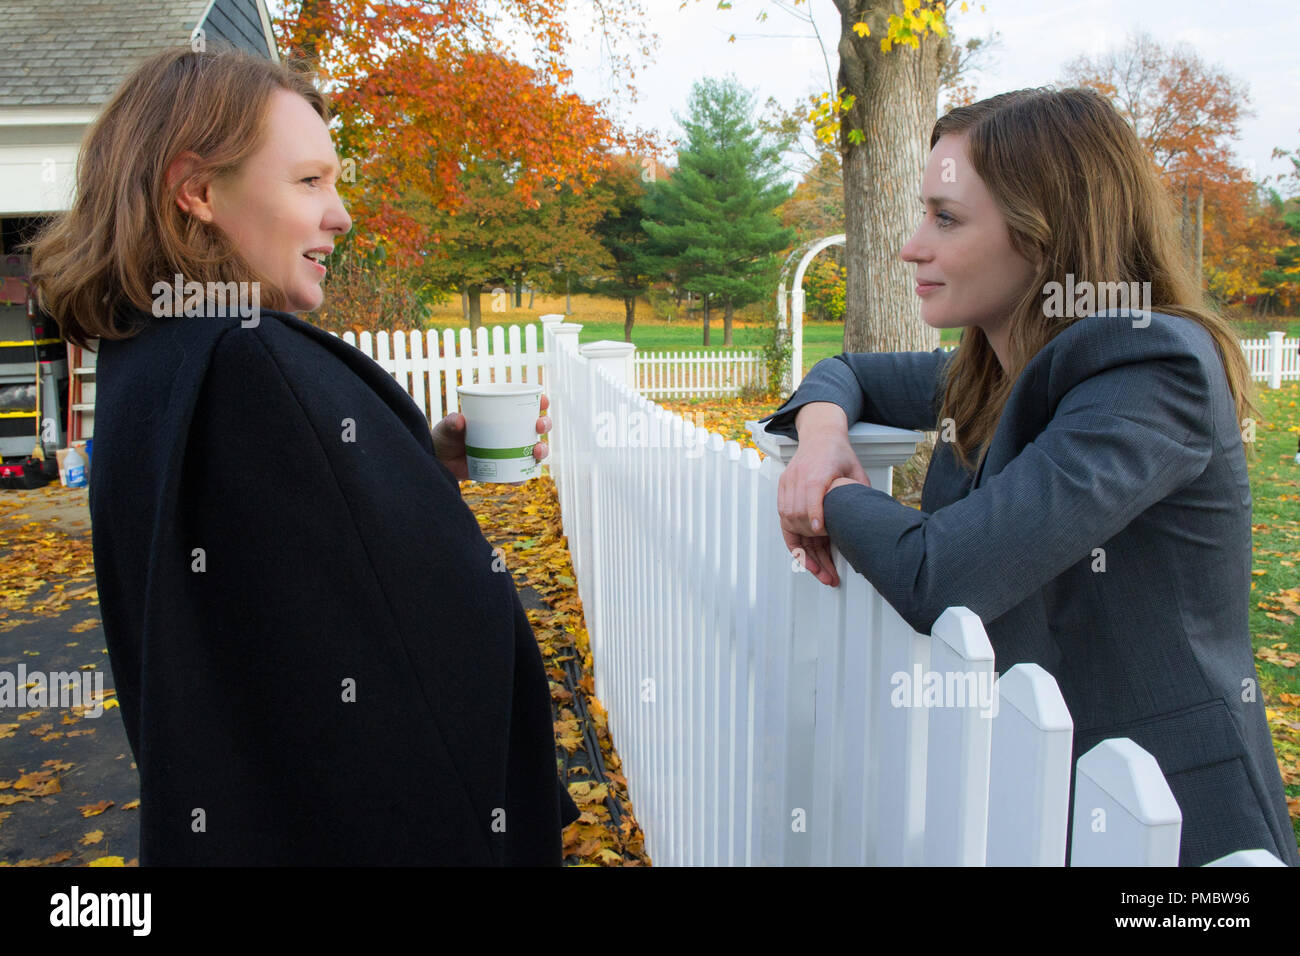 (L to R) Book author PAULA HAWKINS and EMILY BLUNT as Rachel on the set of DreamWorks Pictures 'The Girl on the Train' - Stock Image